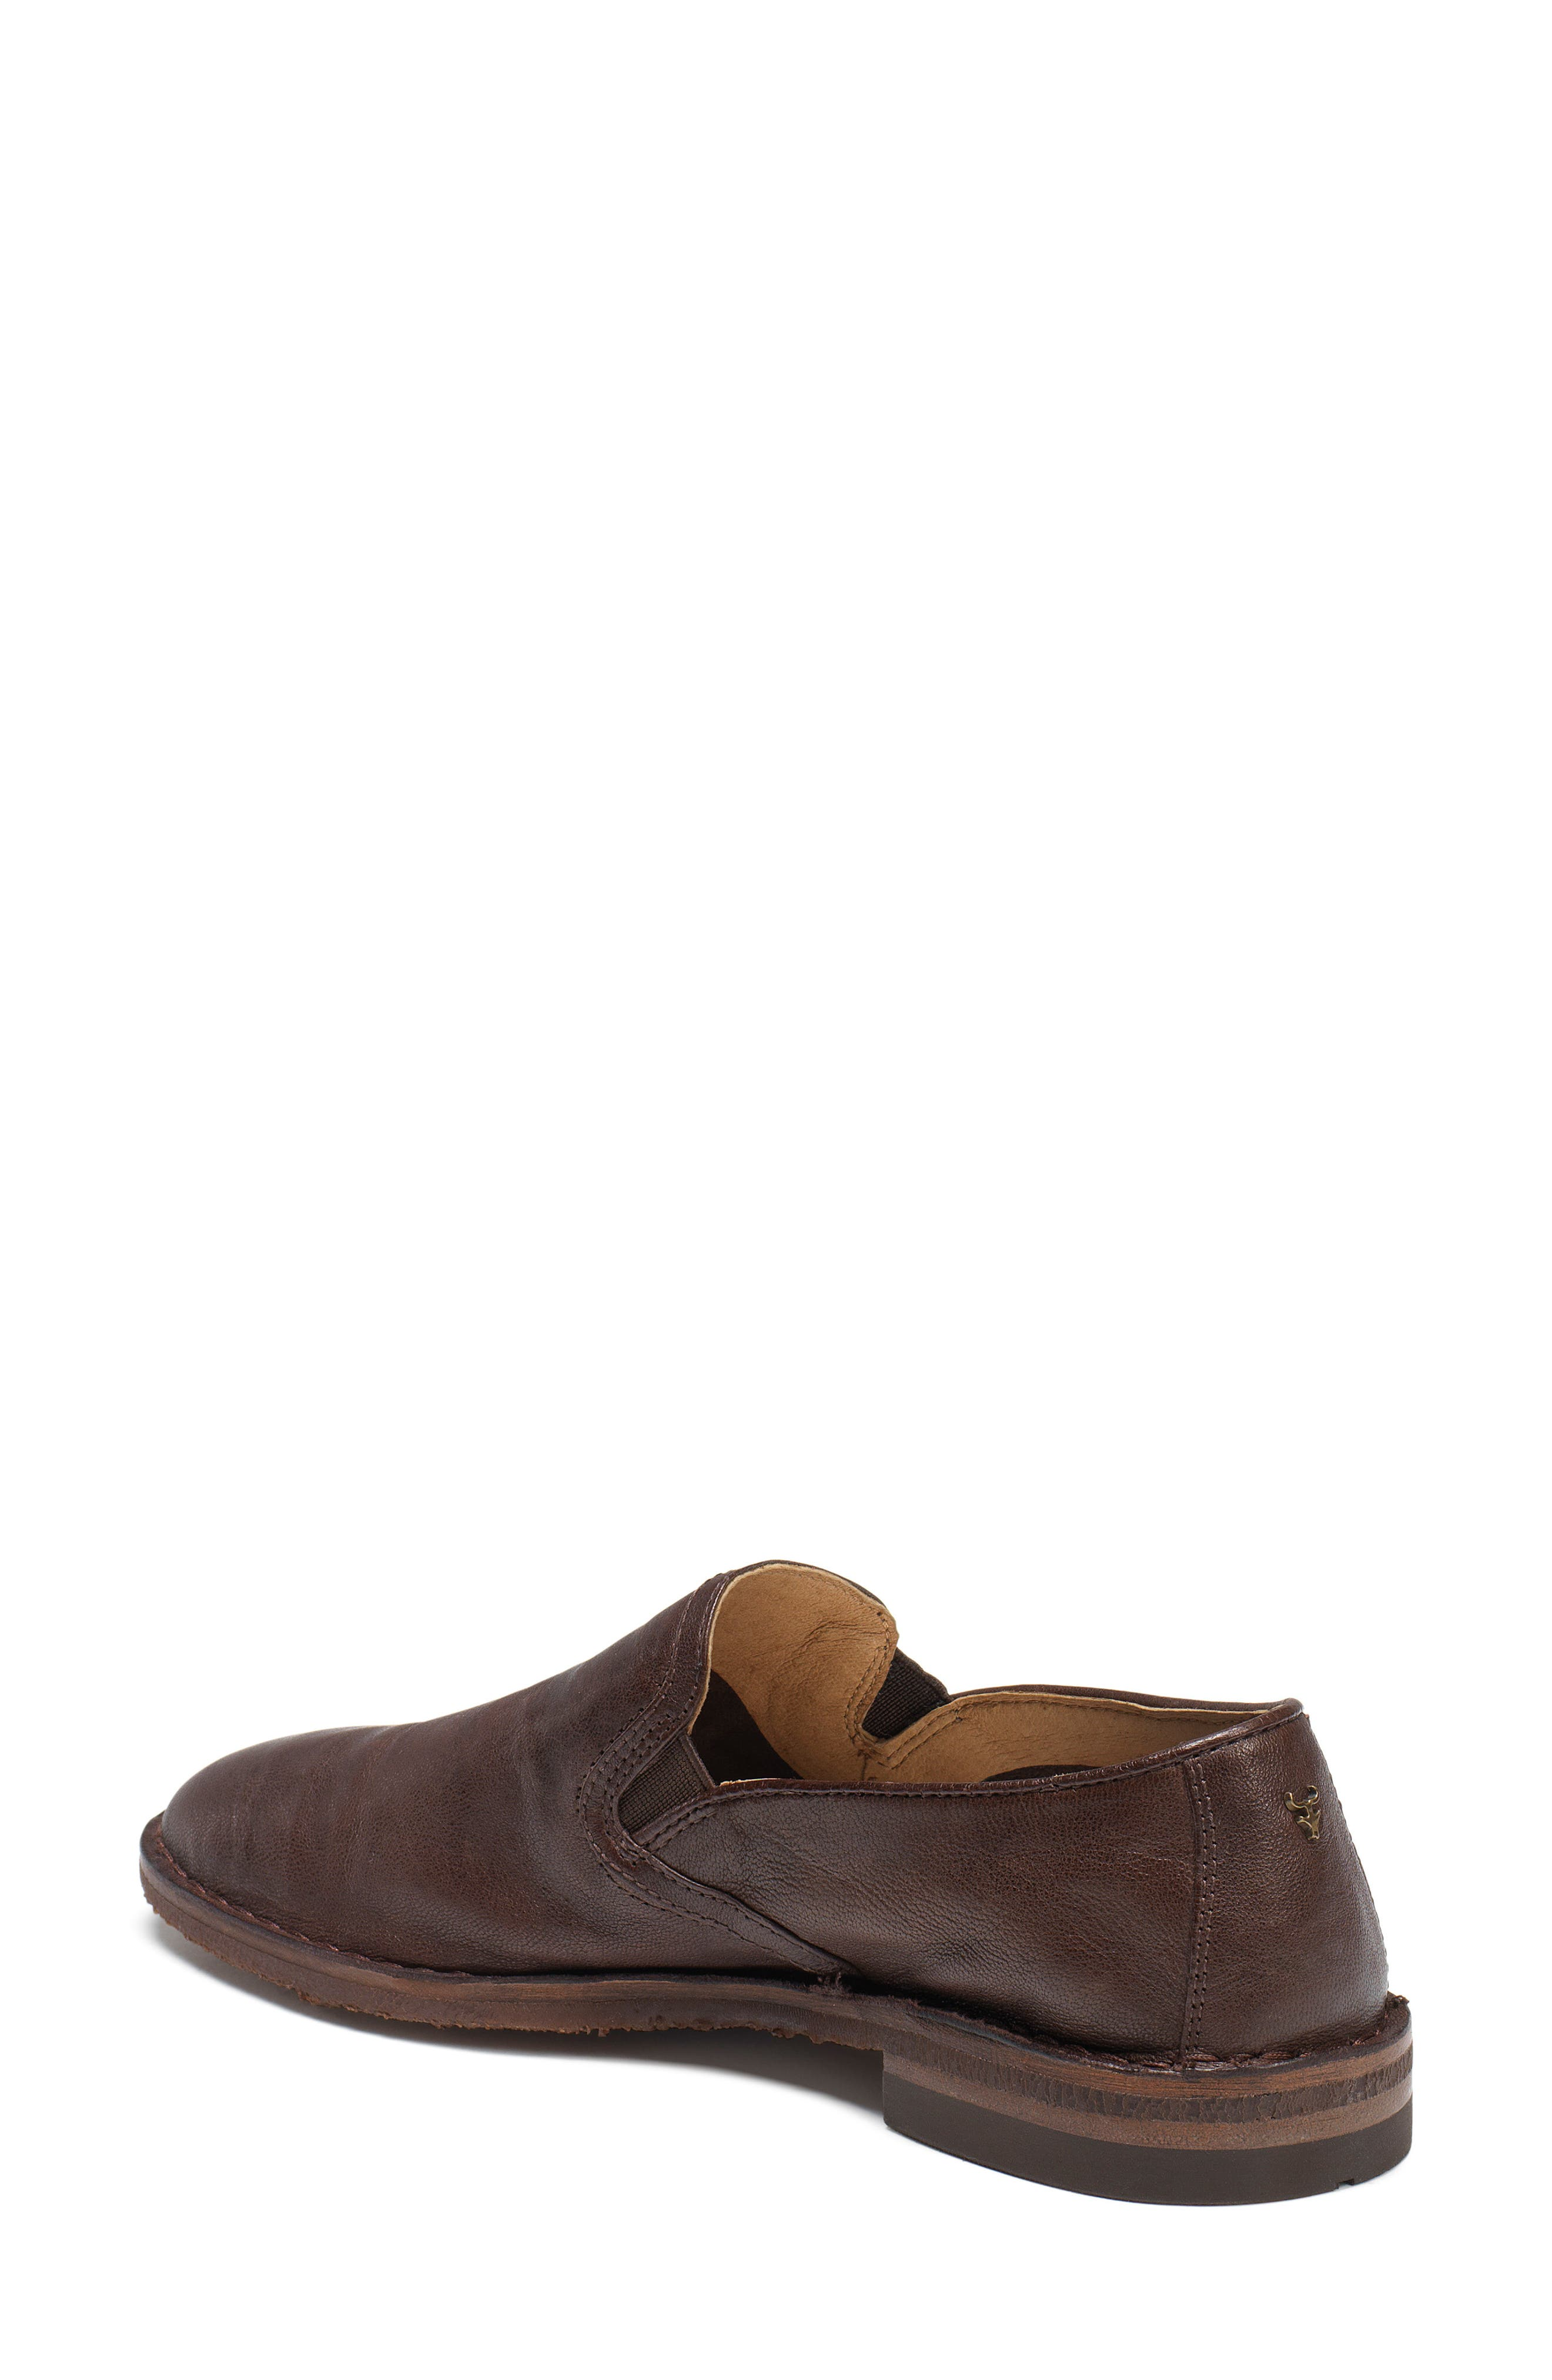 'Ali' Flat,                             Alternate thumbnail 2, color,                             BROWN LEATHER